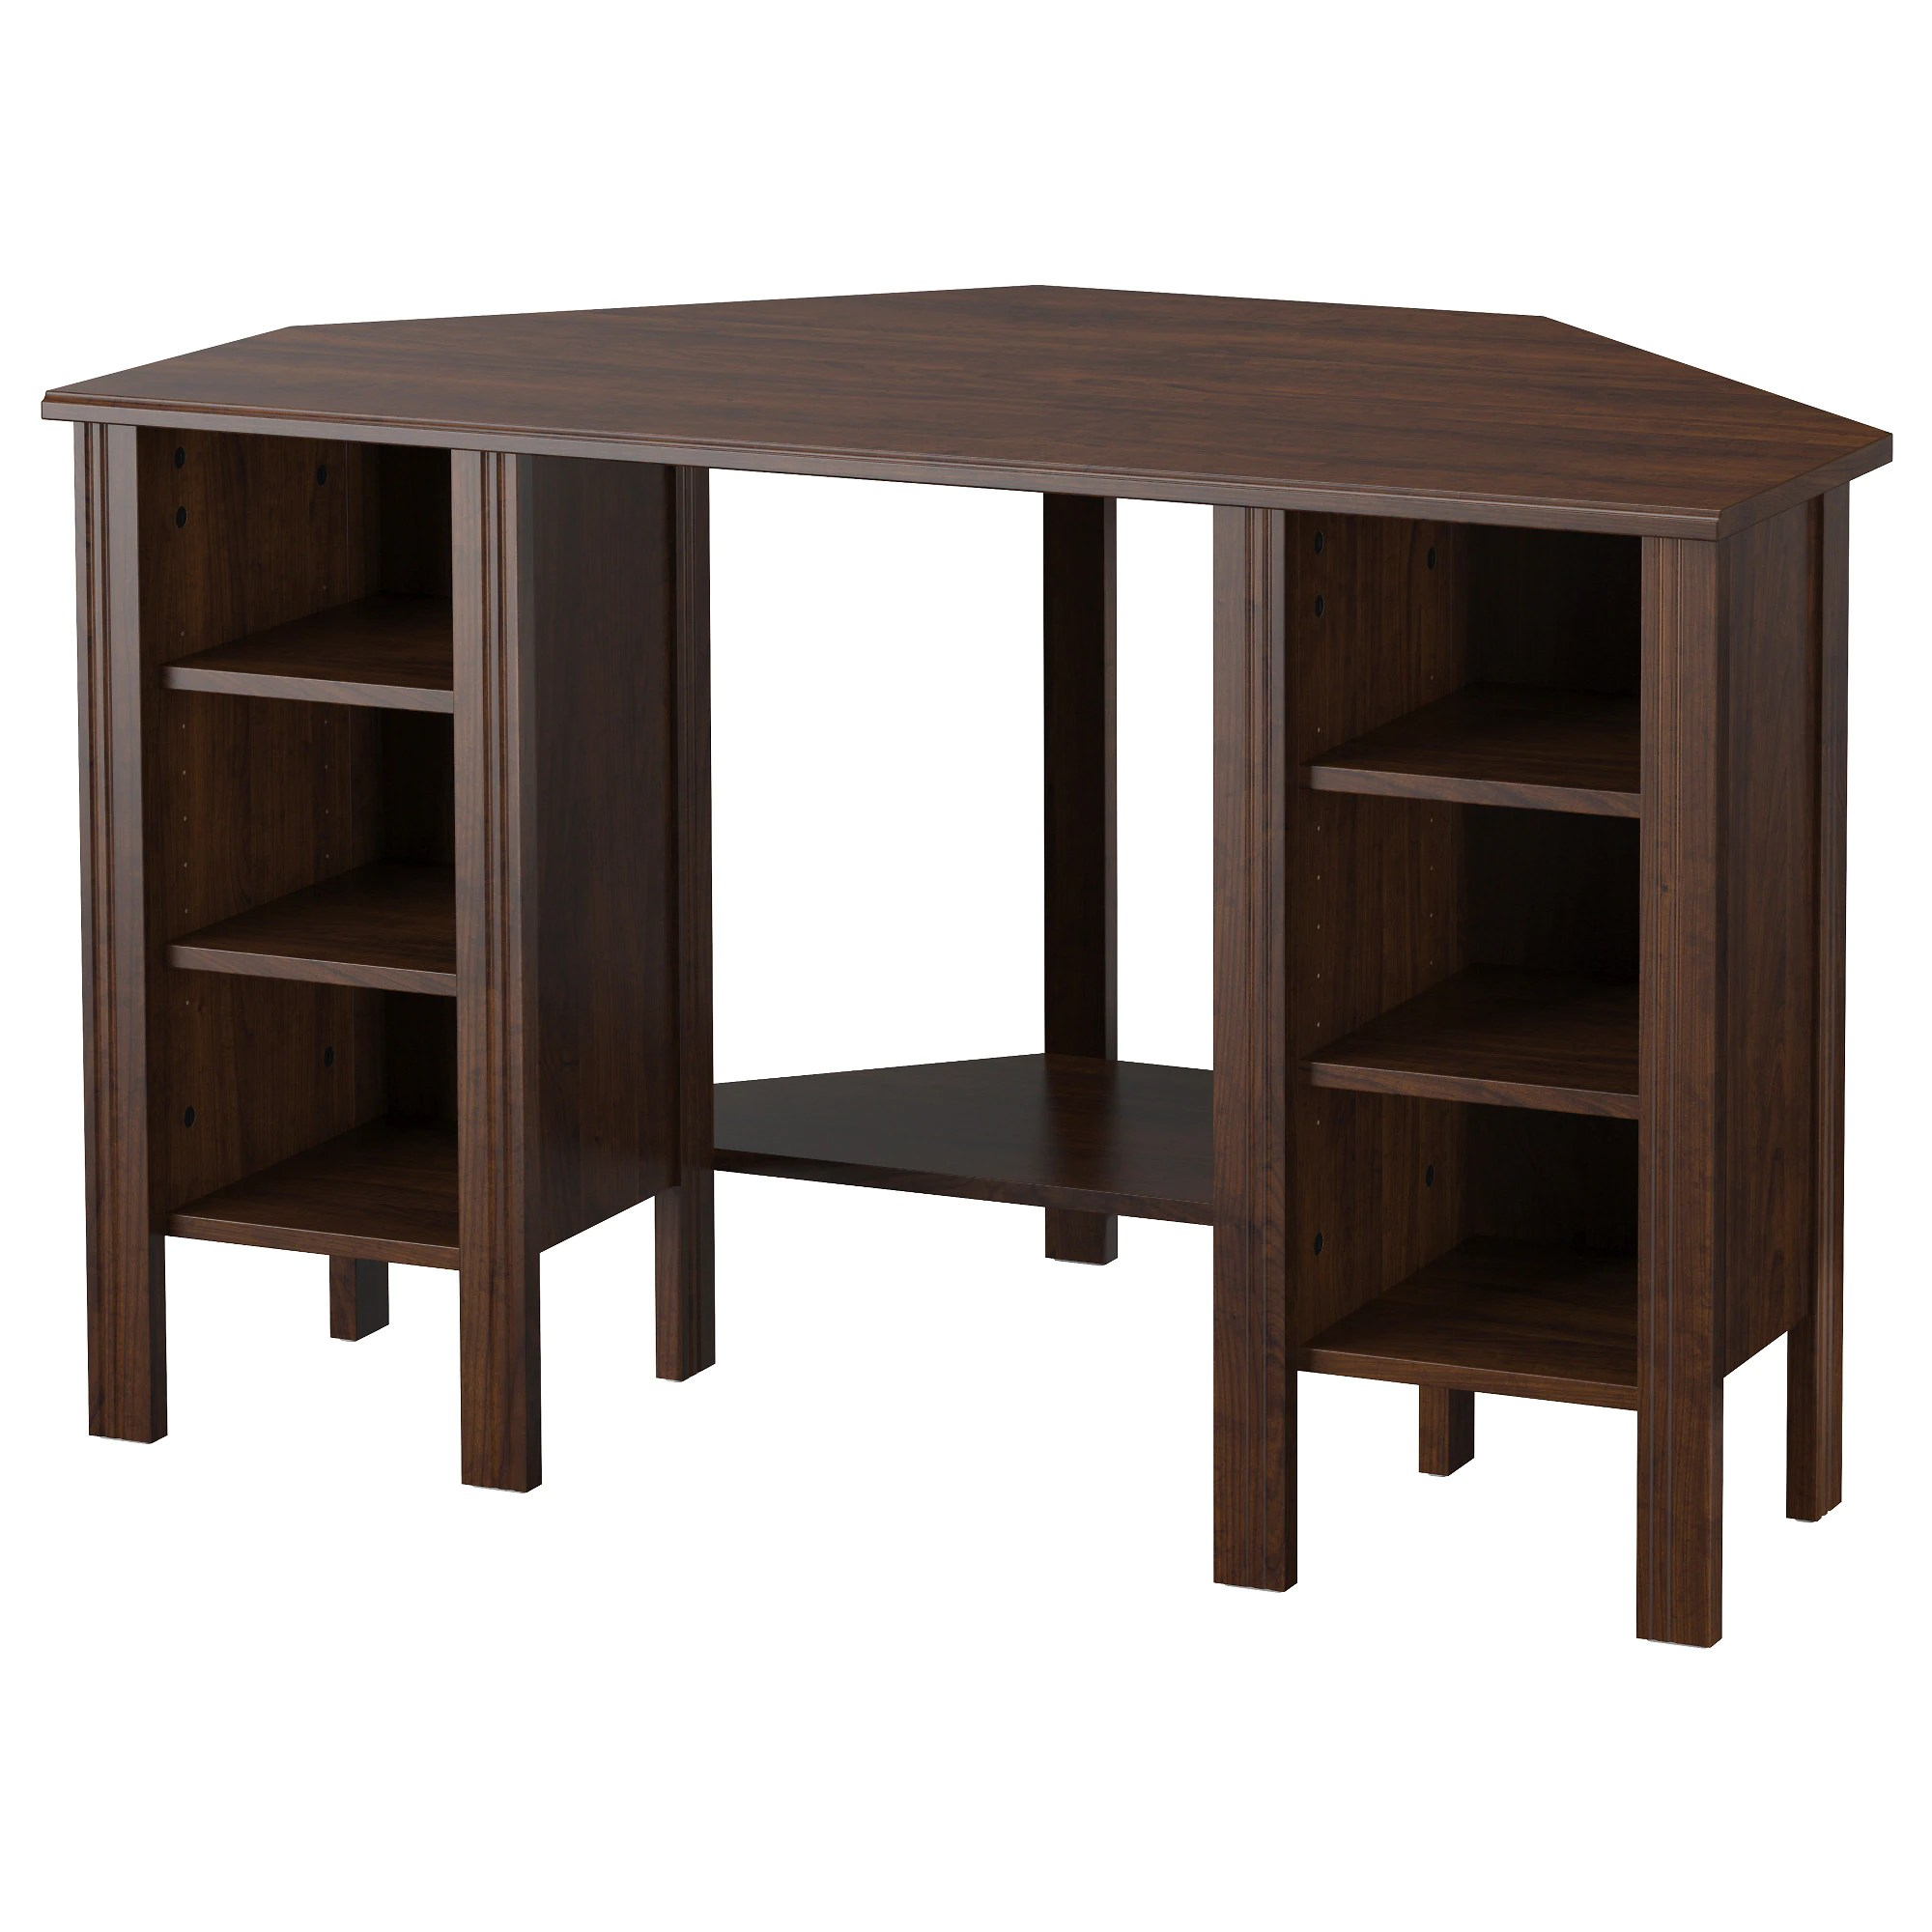 Ikea Table Brusali Corner Desk Brown